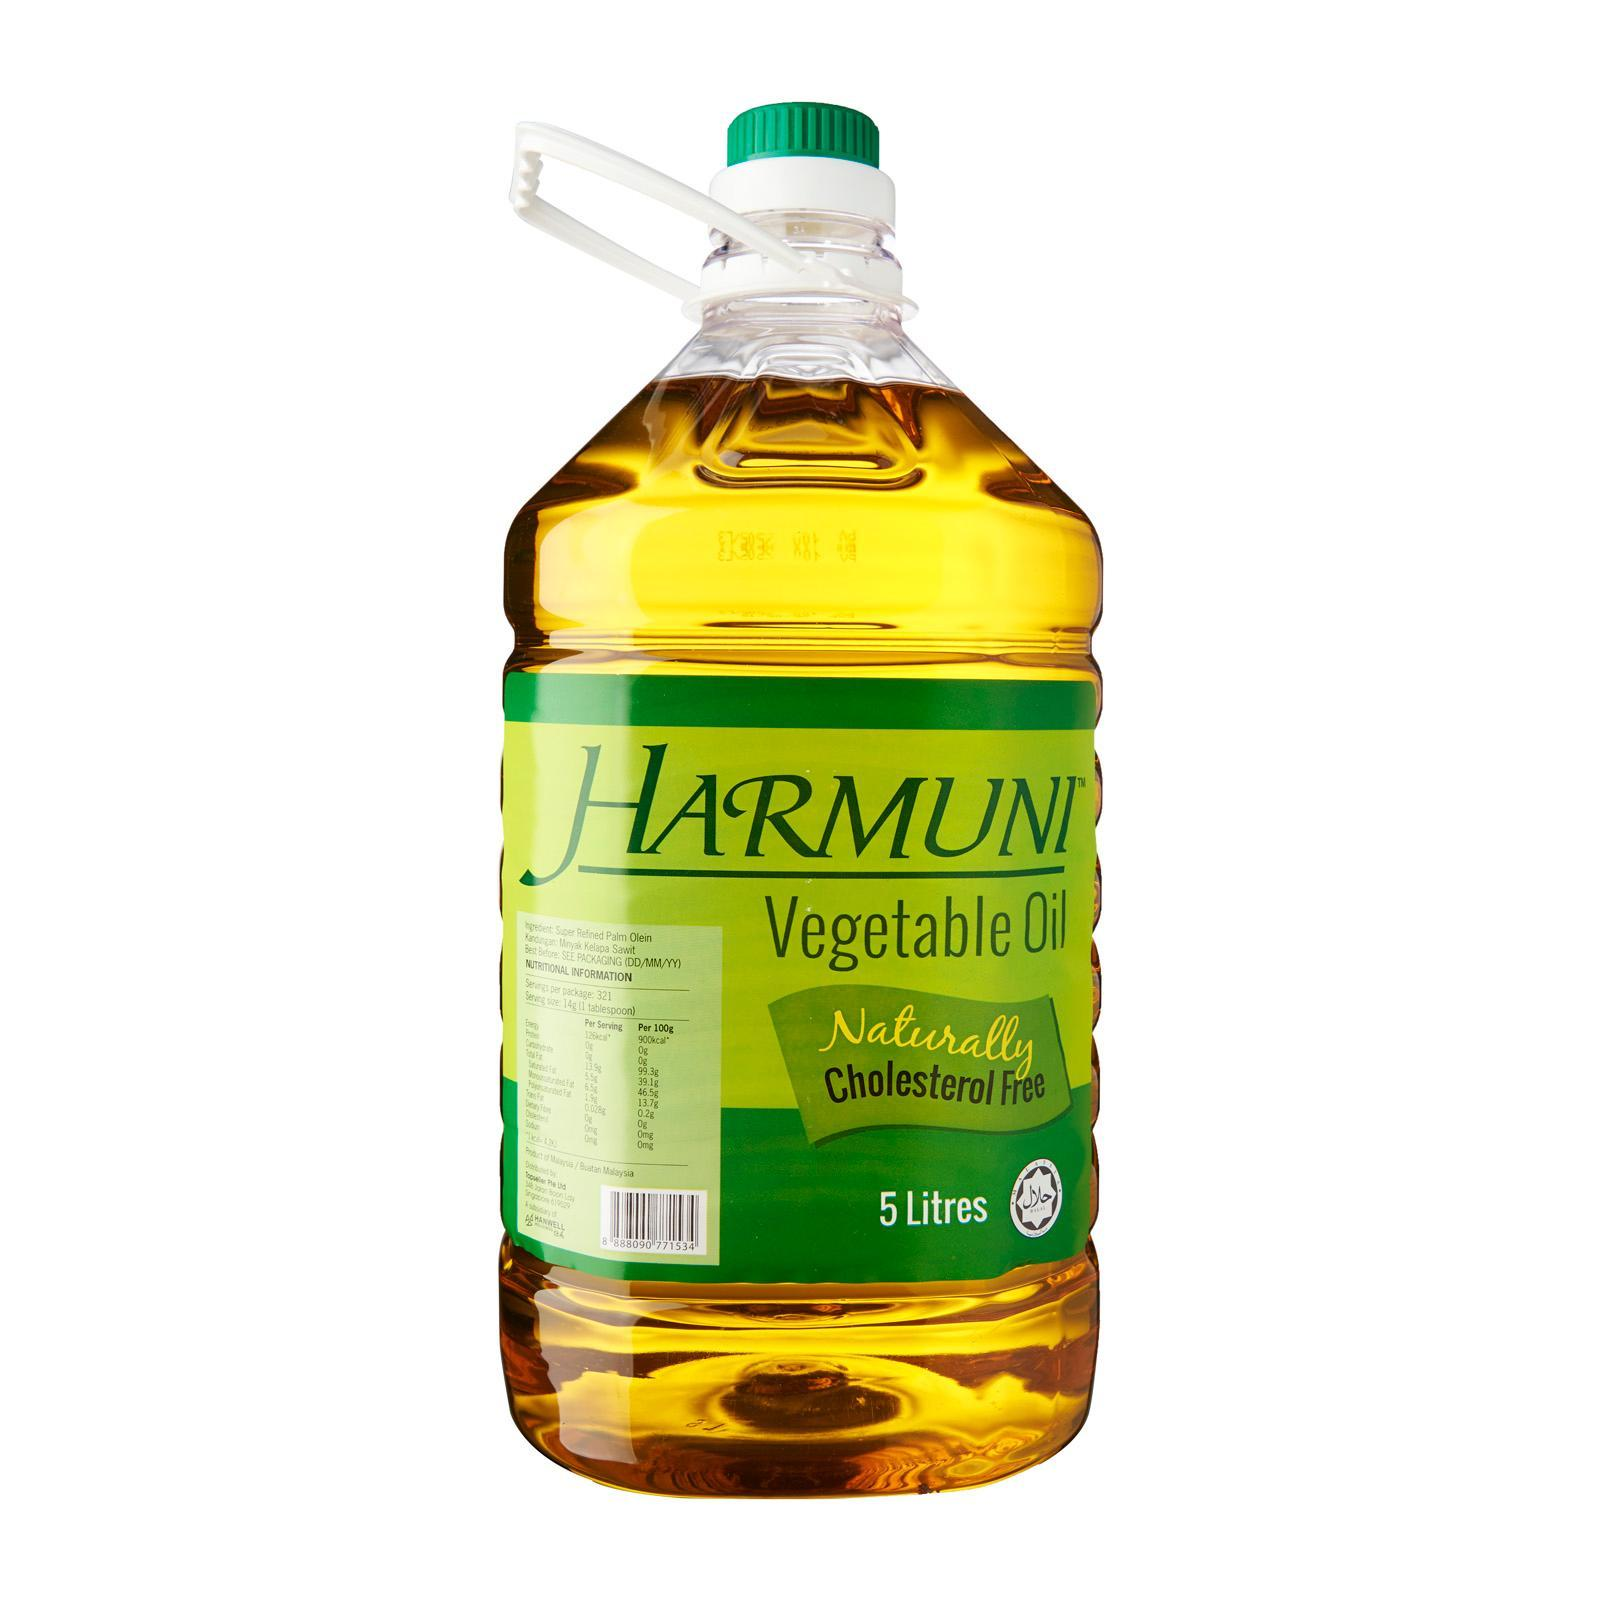 Harmuni Vegetable Oil 5L